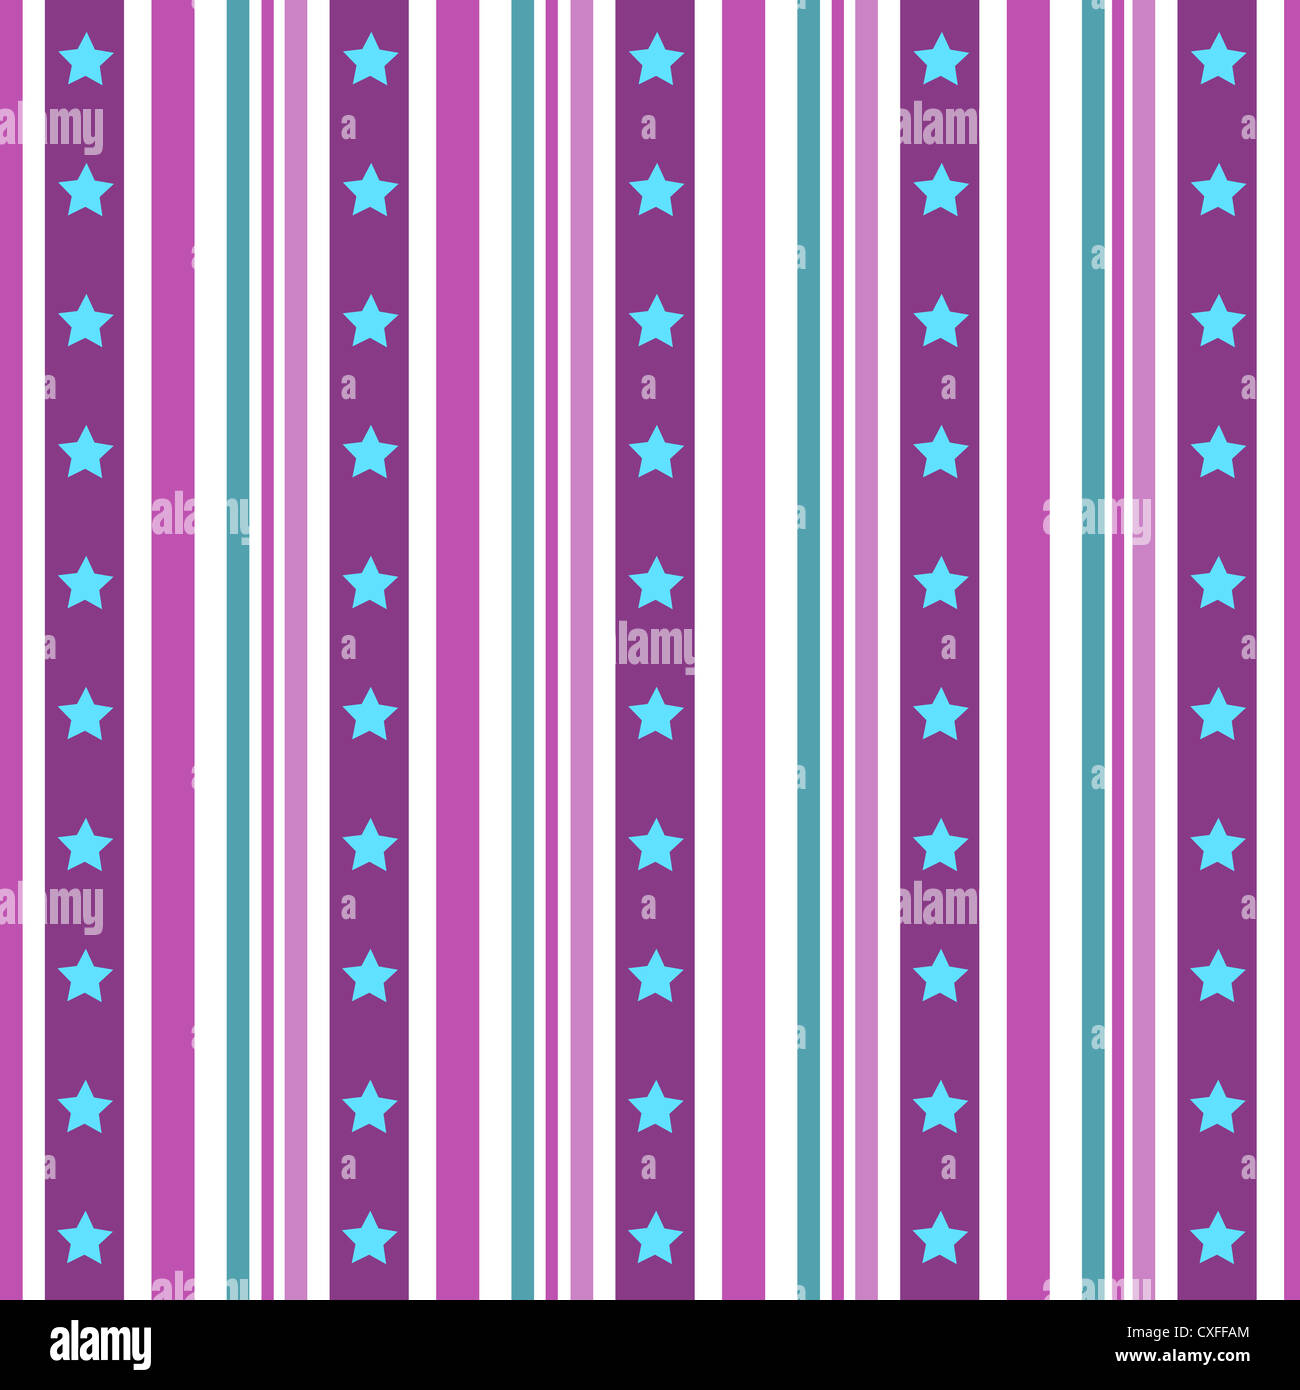 Stars and stripes pattern in purple and blue Stock Photo